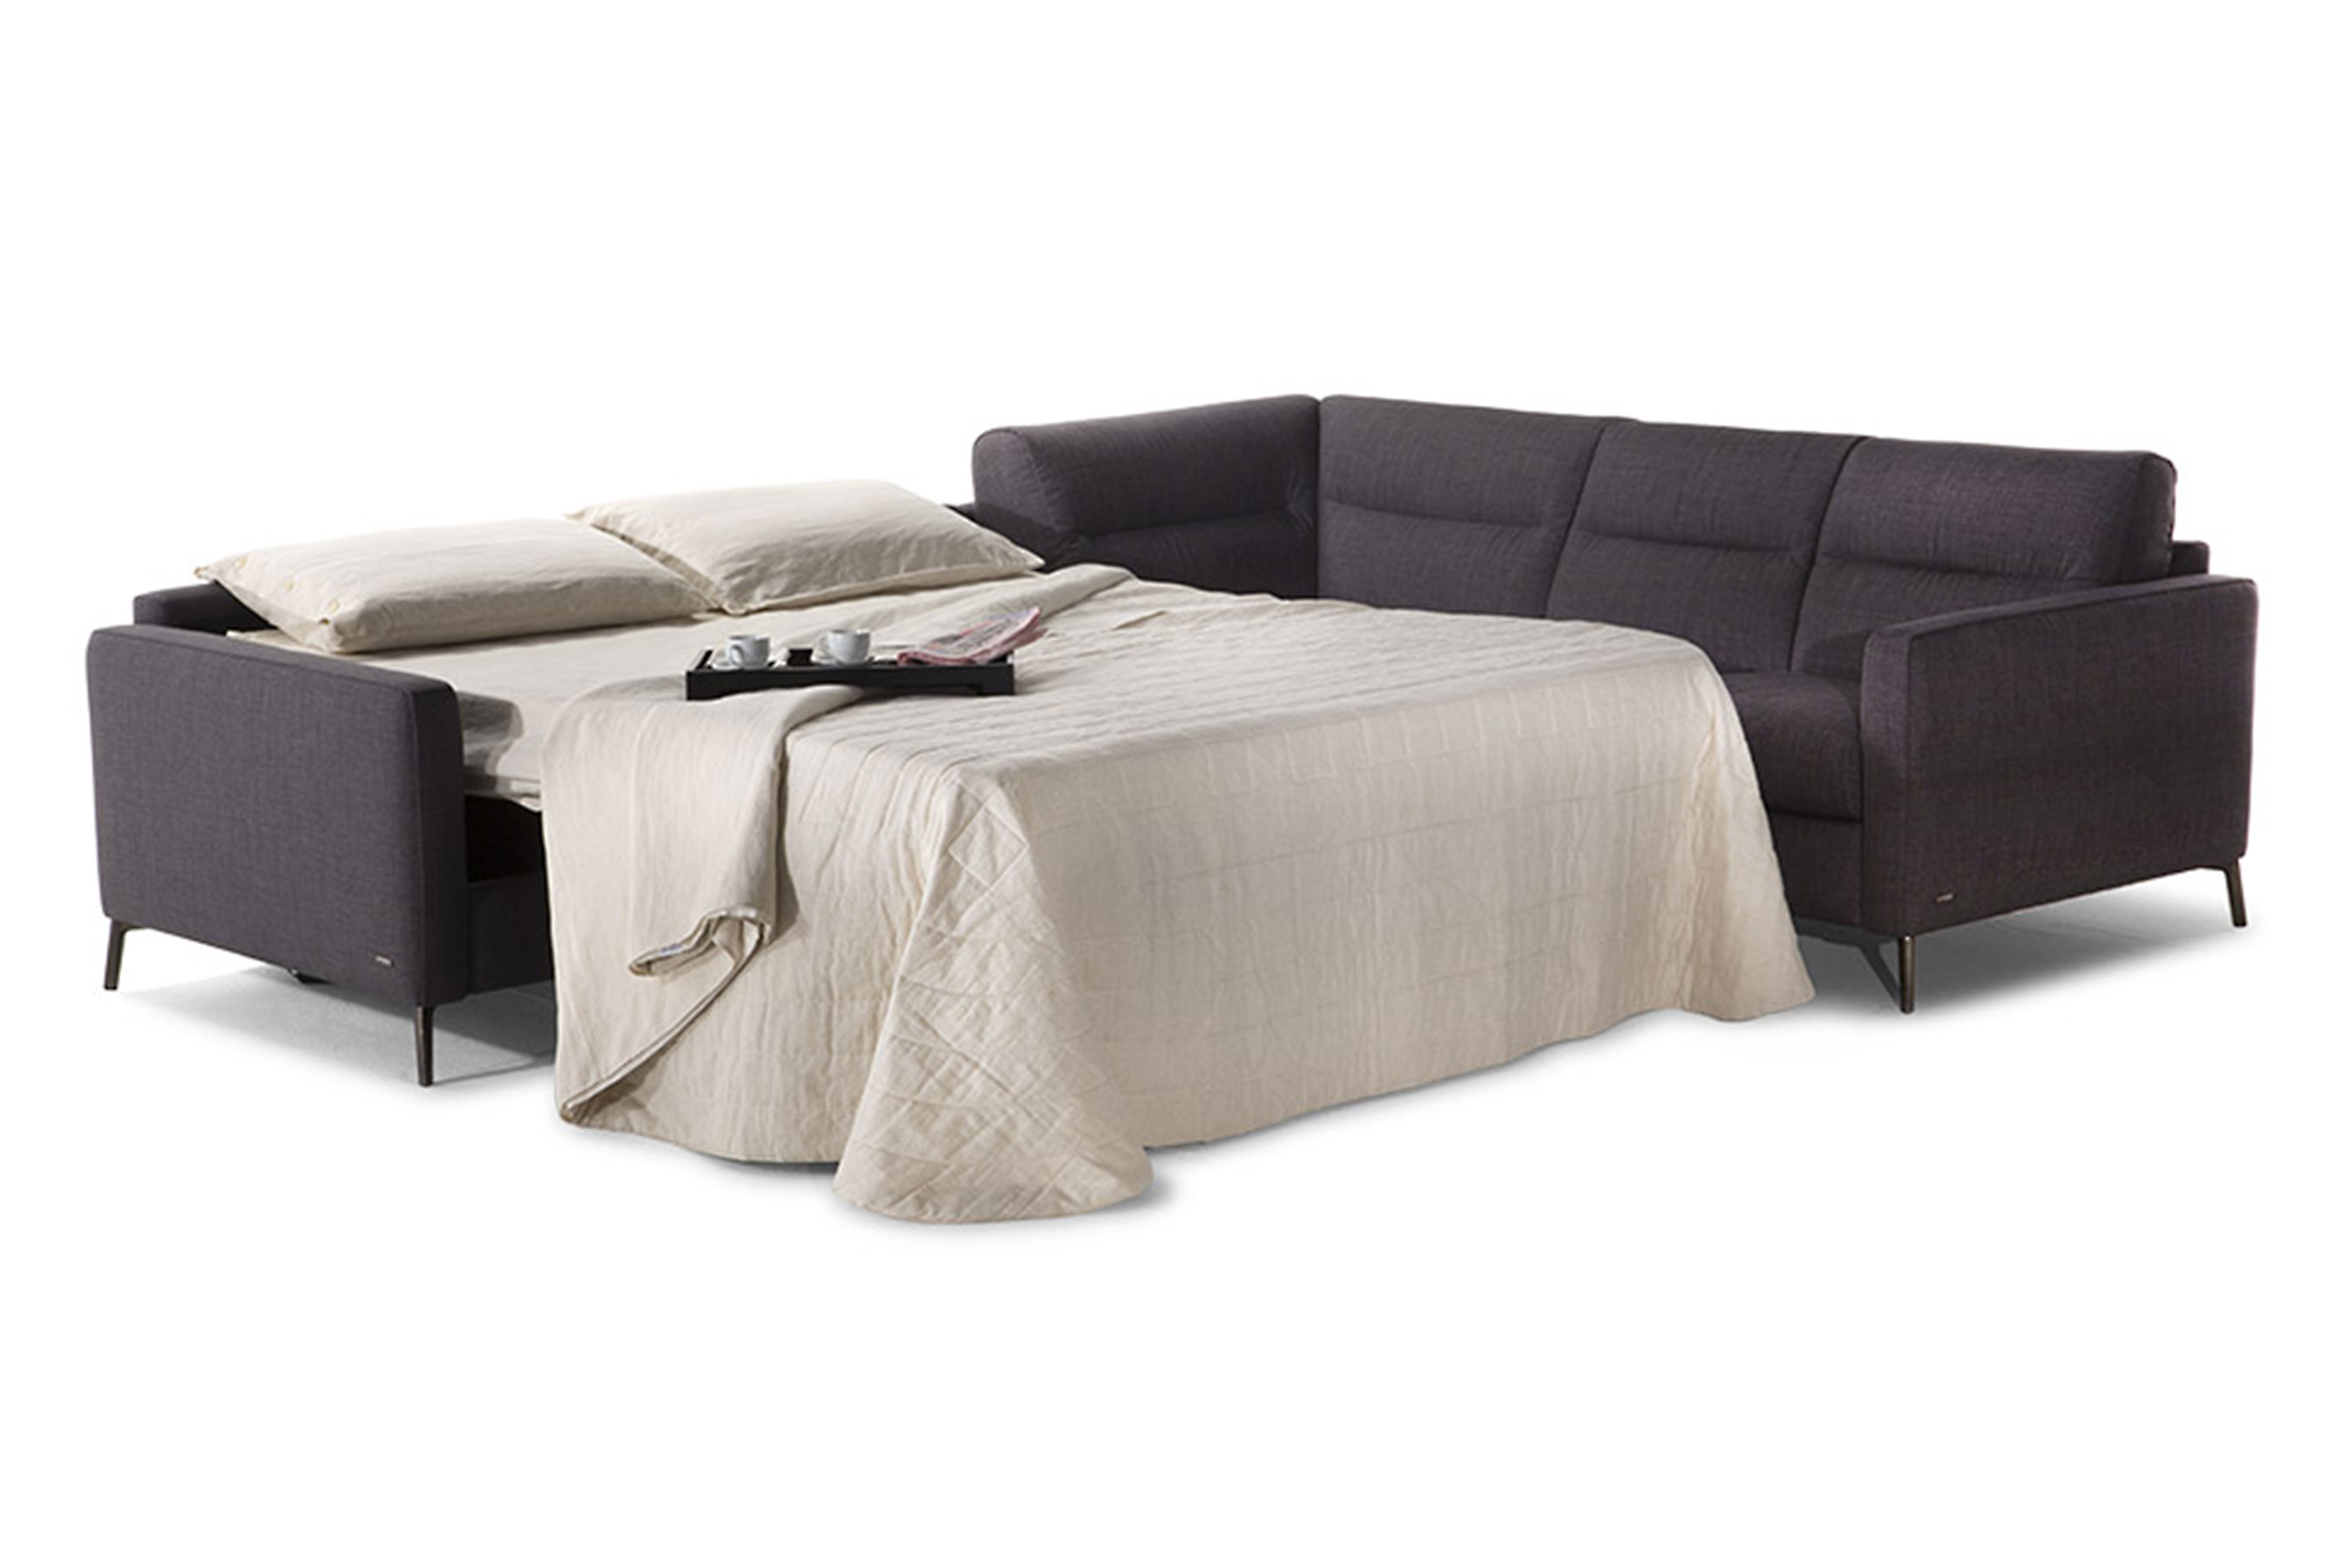 sofa sleeper of with sectional couch large leather size chaise sofas recliner bed gray black